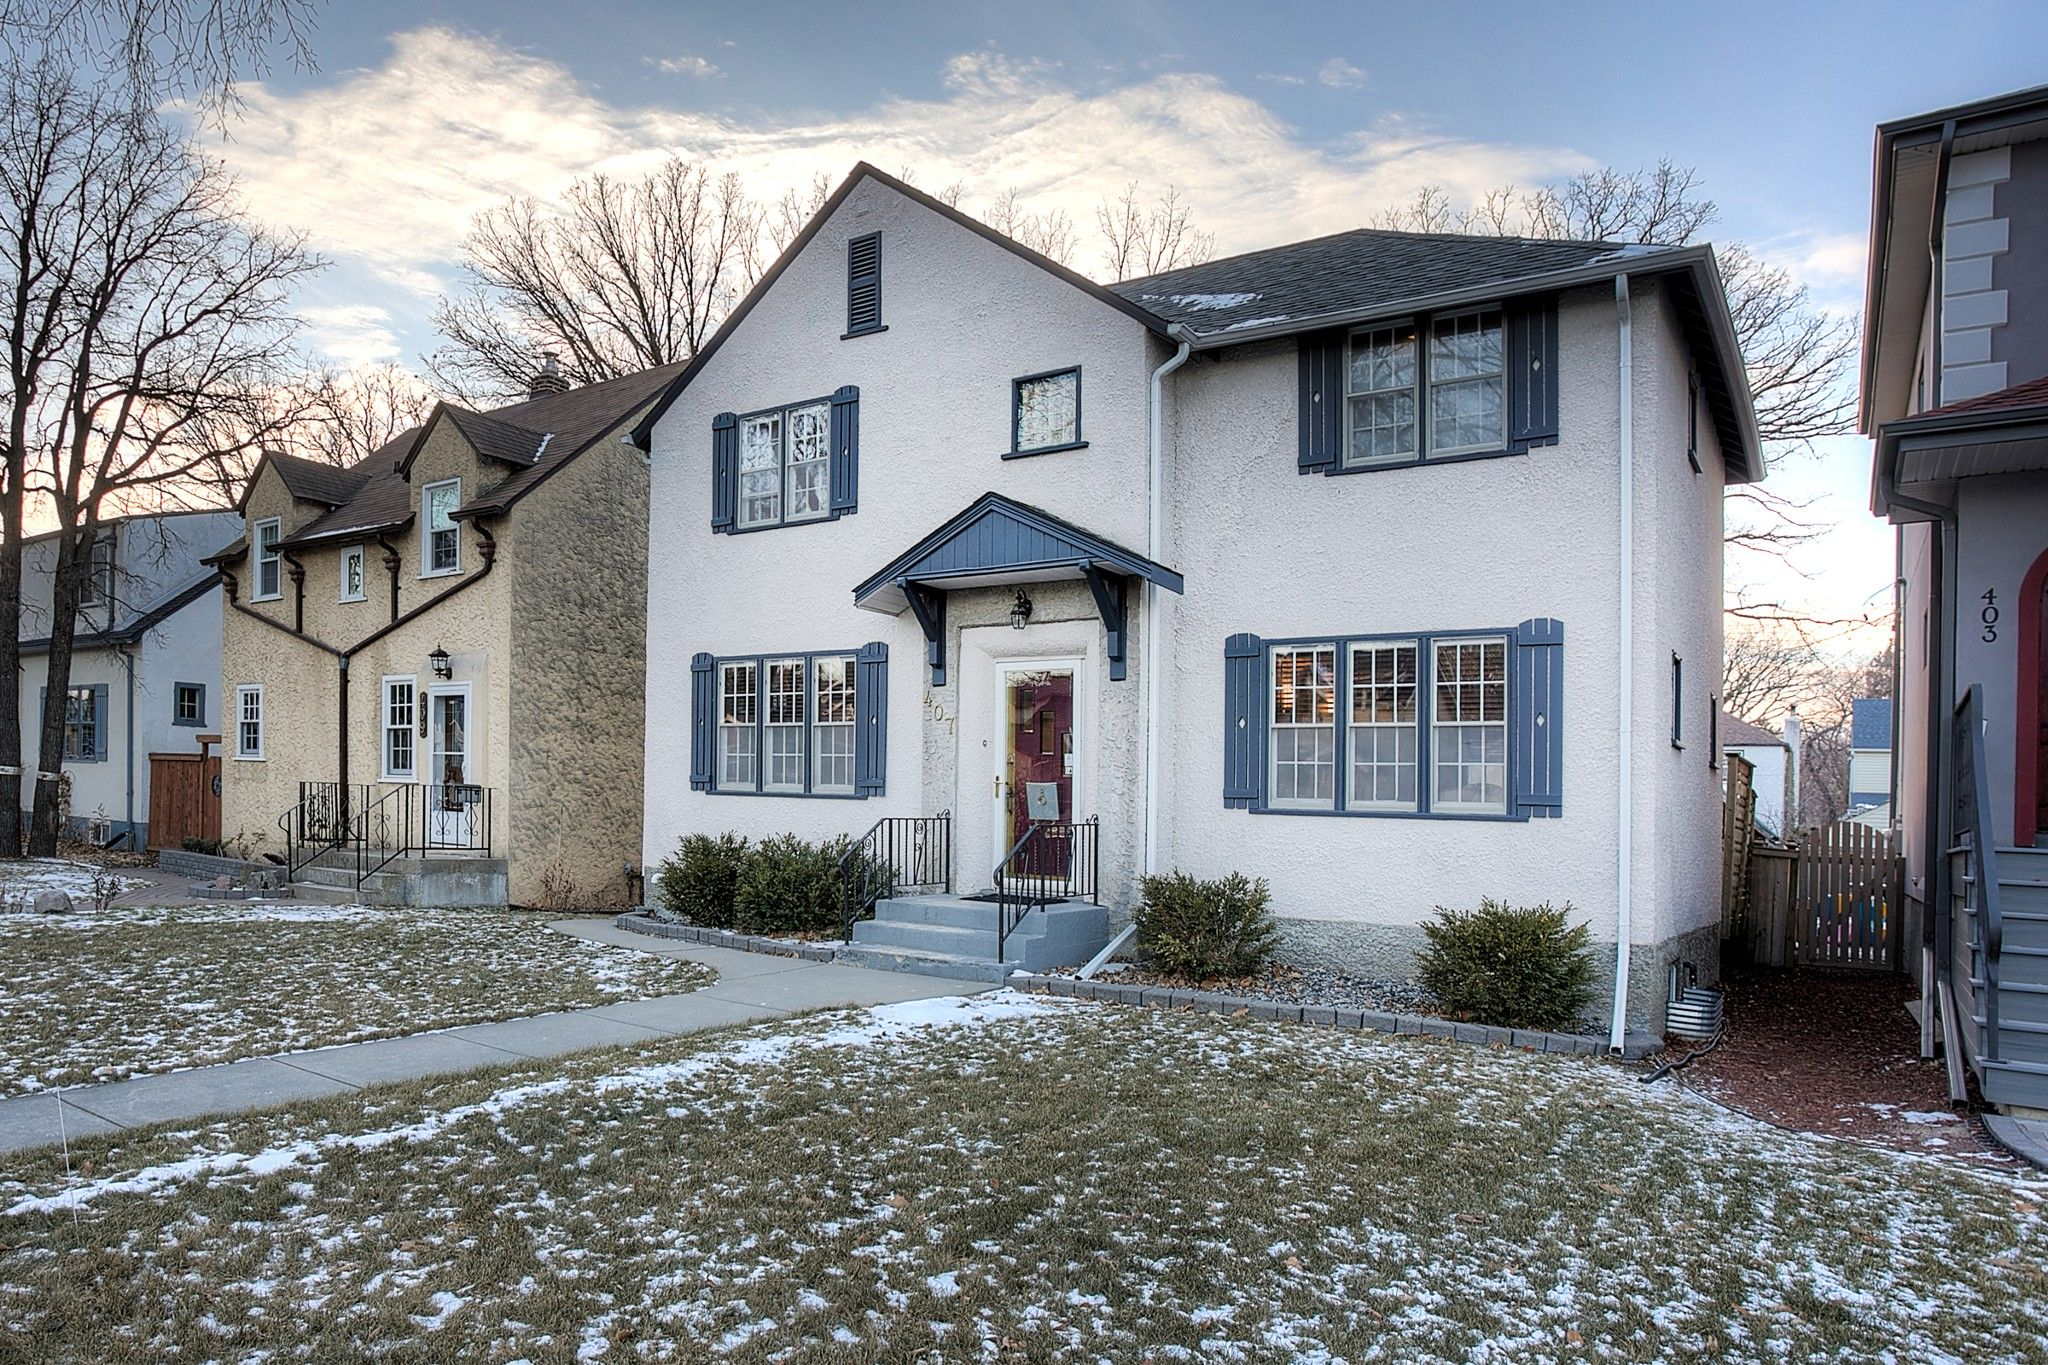 Main Photo: 407 Oxford Street in Winnipeg: River Heights North Single Family Detached for sale (1C)  : MLS®# 202028182